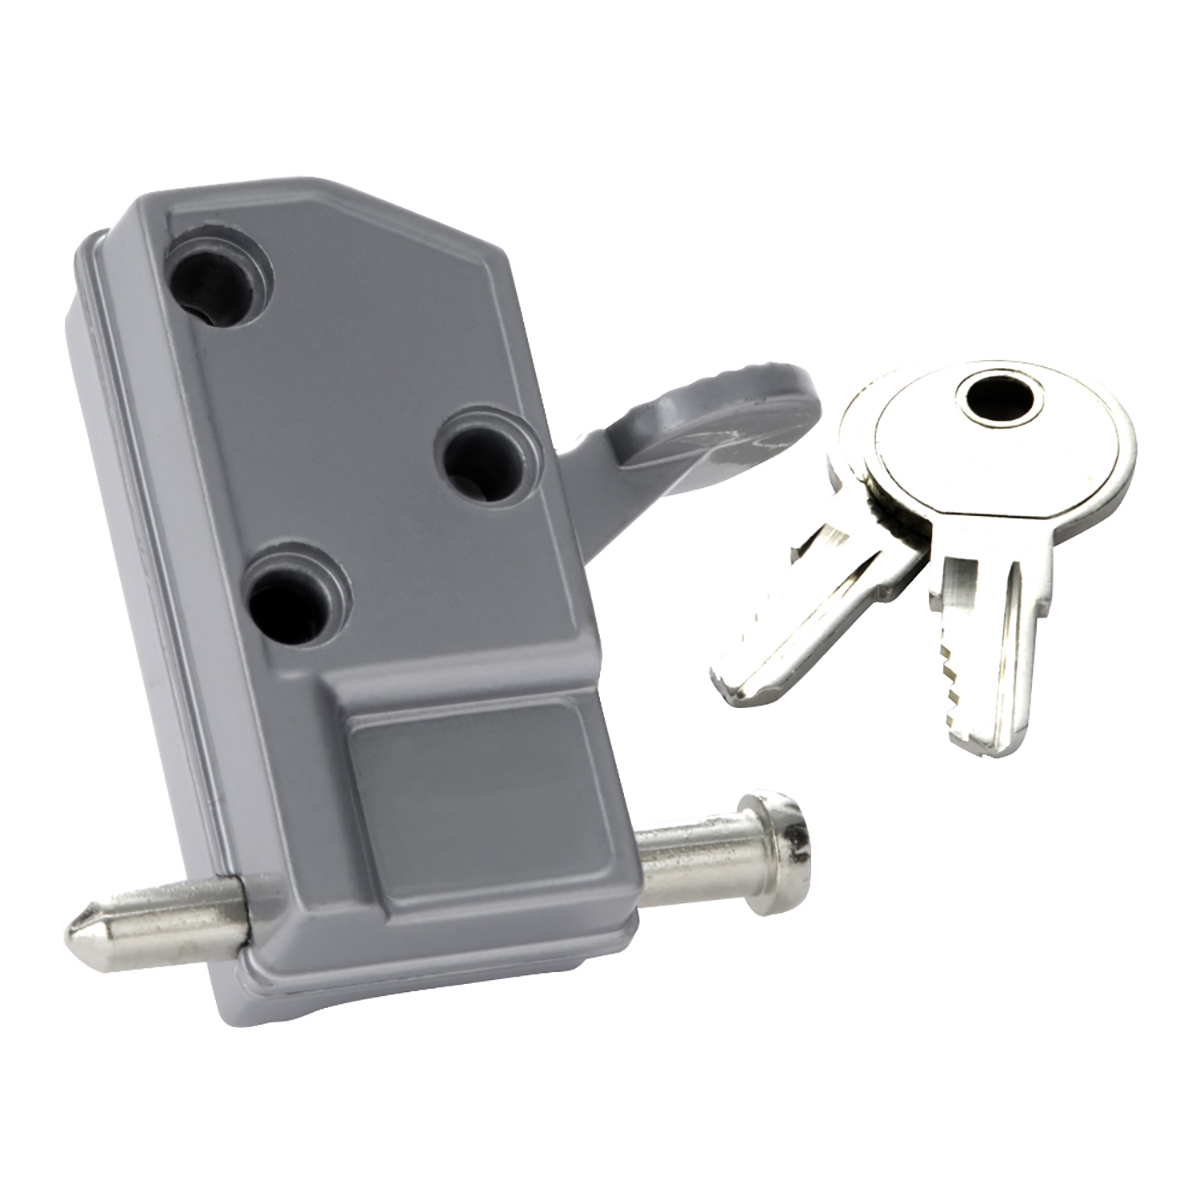 Sliding Door Locks. Keyed Patio Door Lock Sliding Locks O